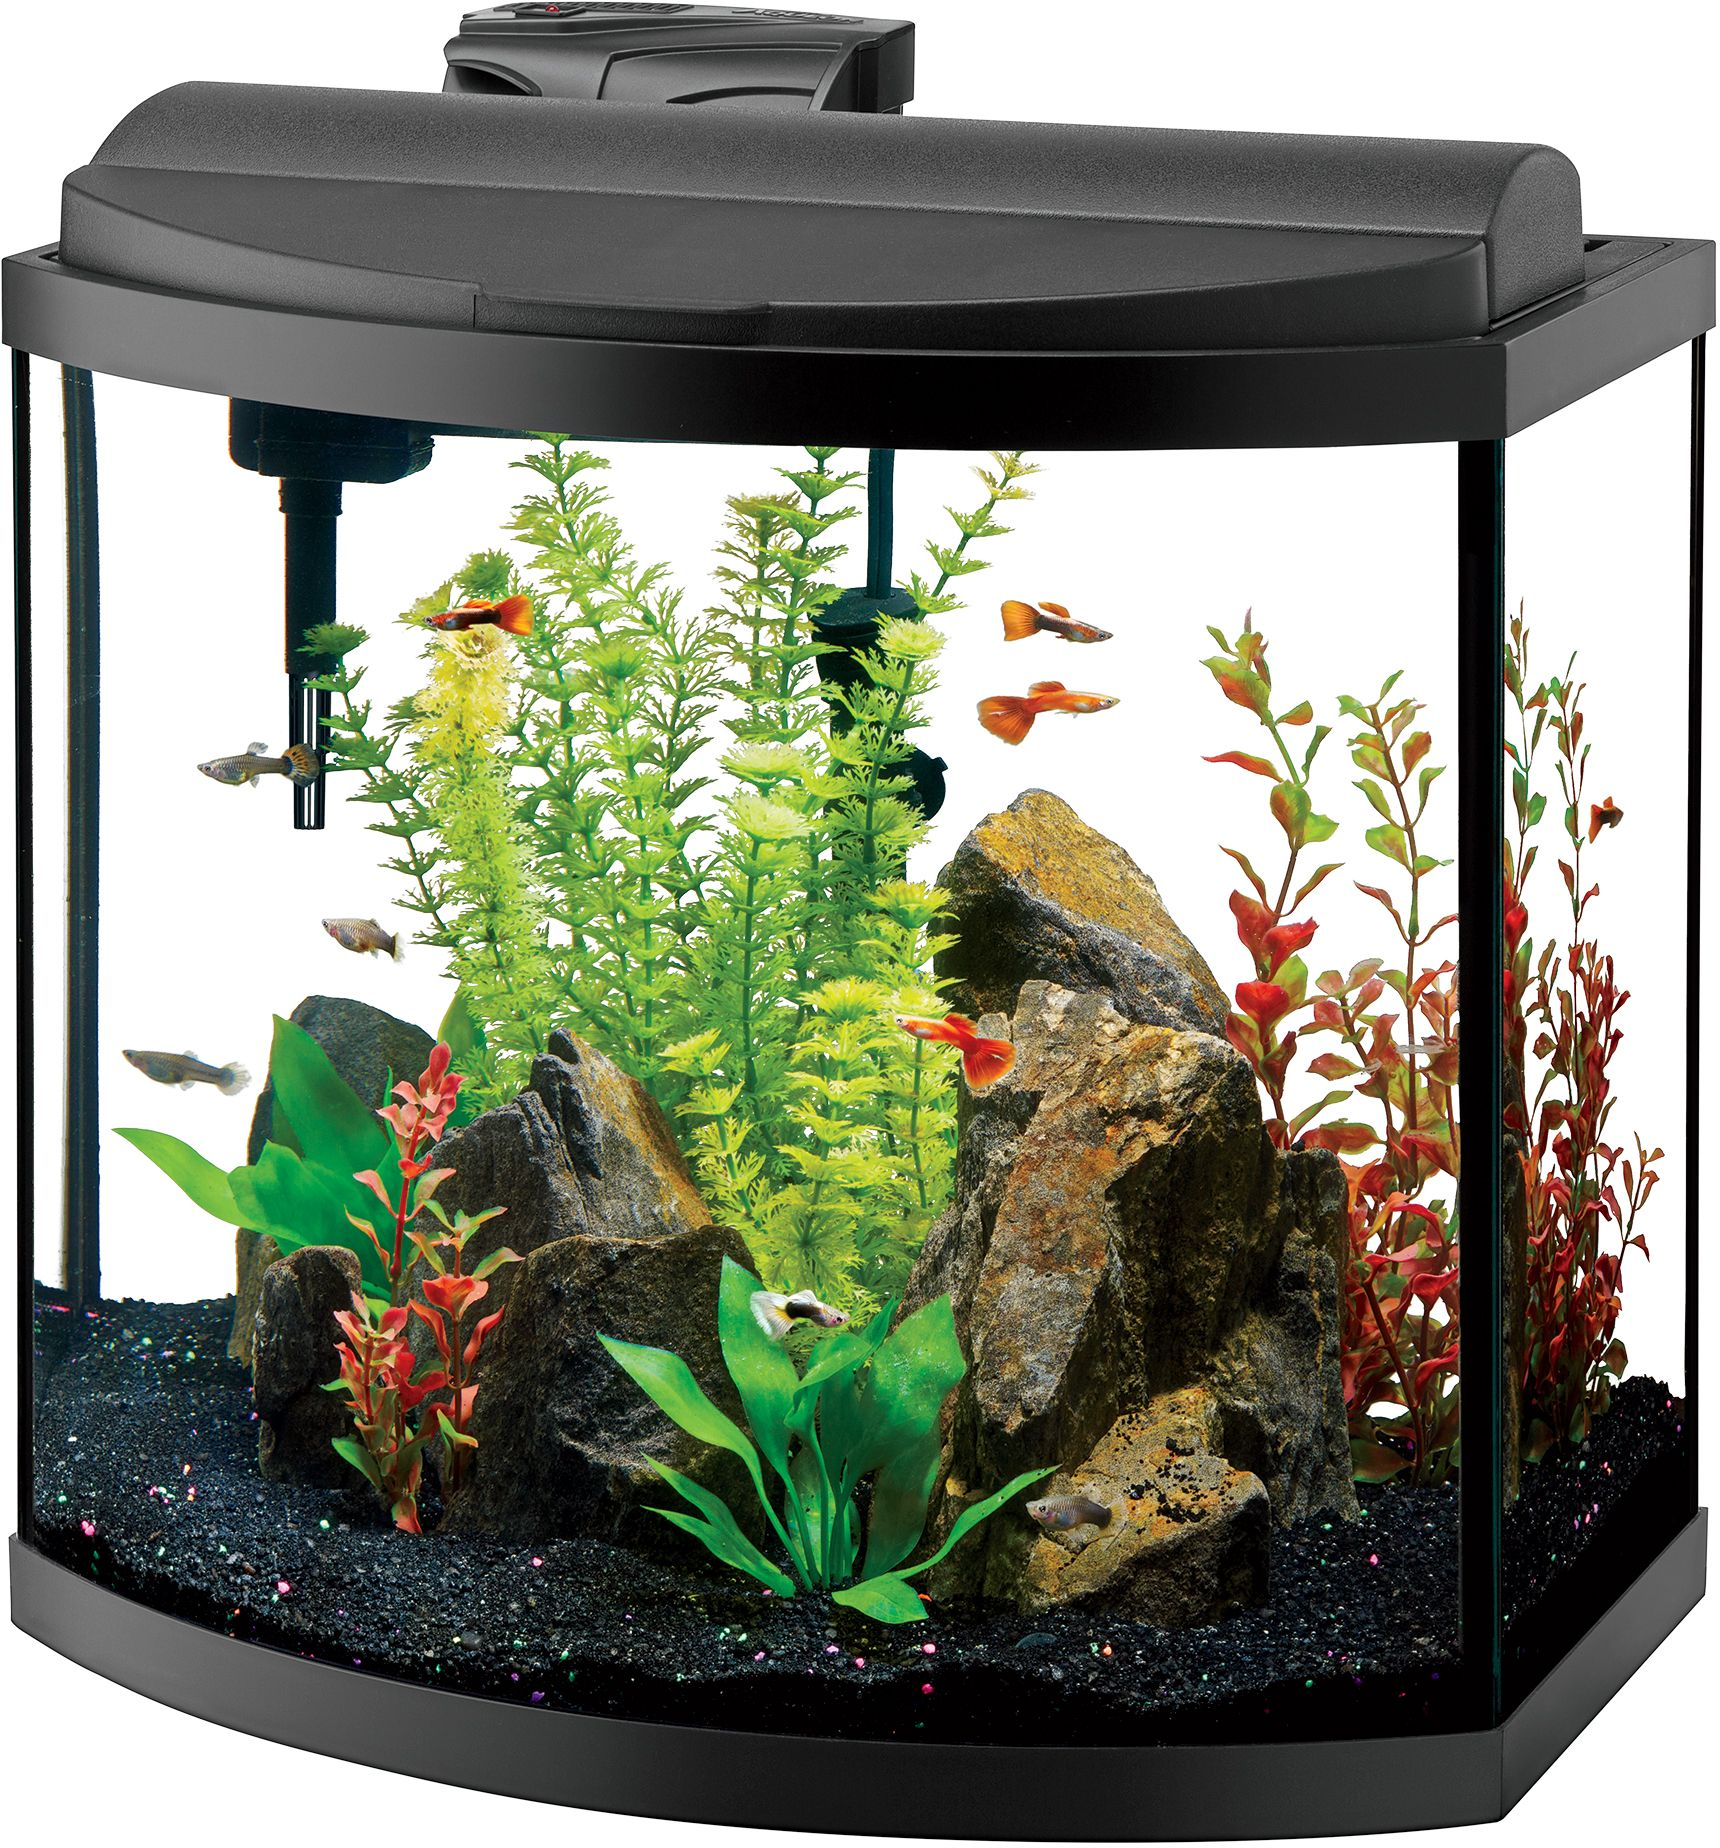 Aqueon deluxe led bow front aquarium kit black 16 gallon for Fish tank and stand combo